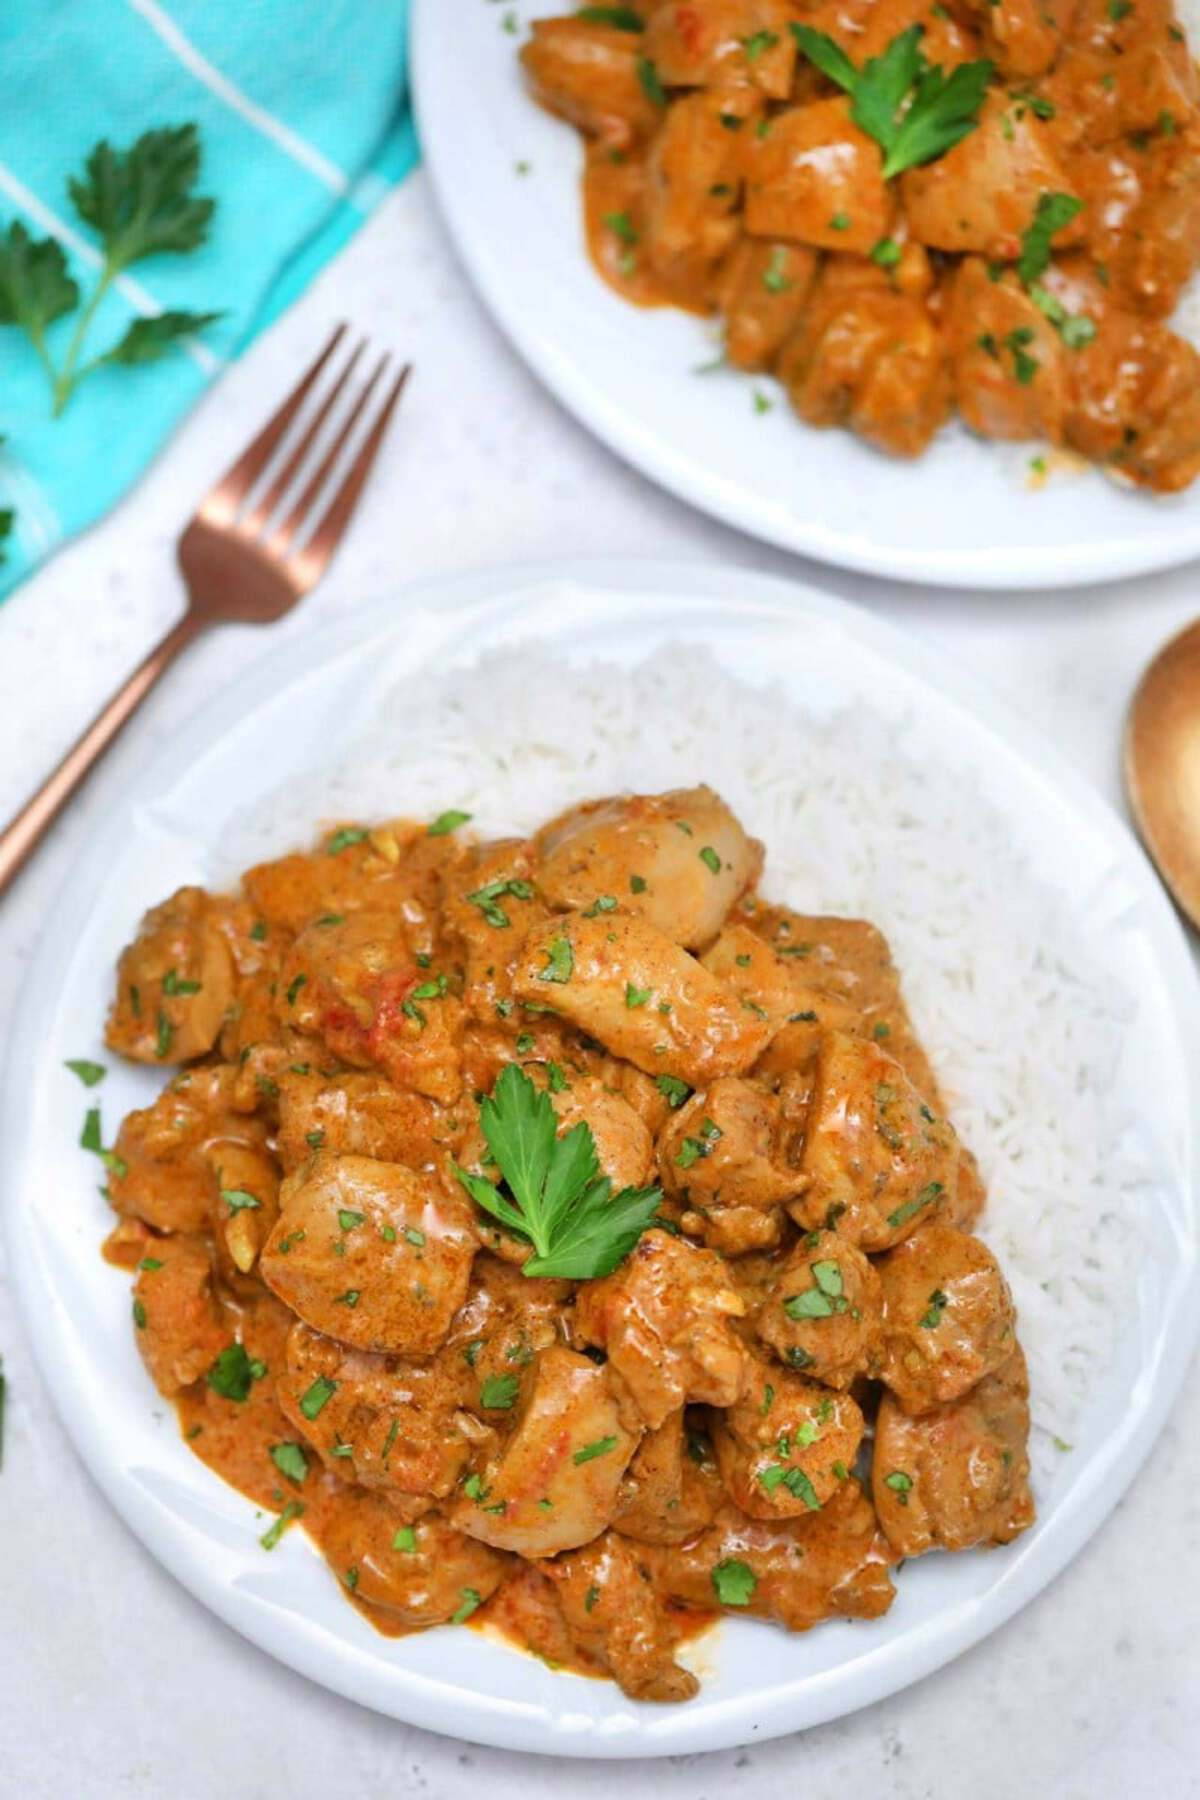 Curry chicken with rice on white plate